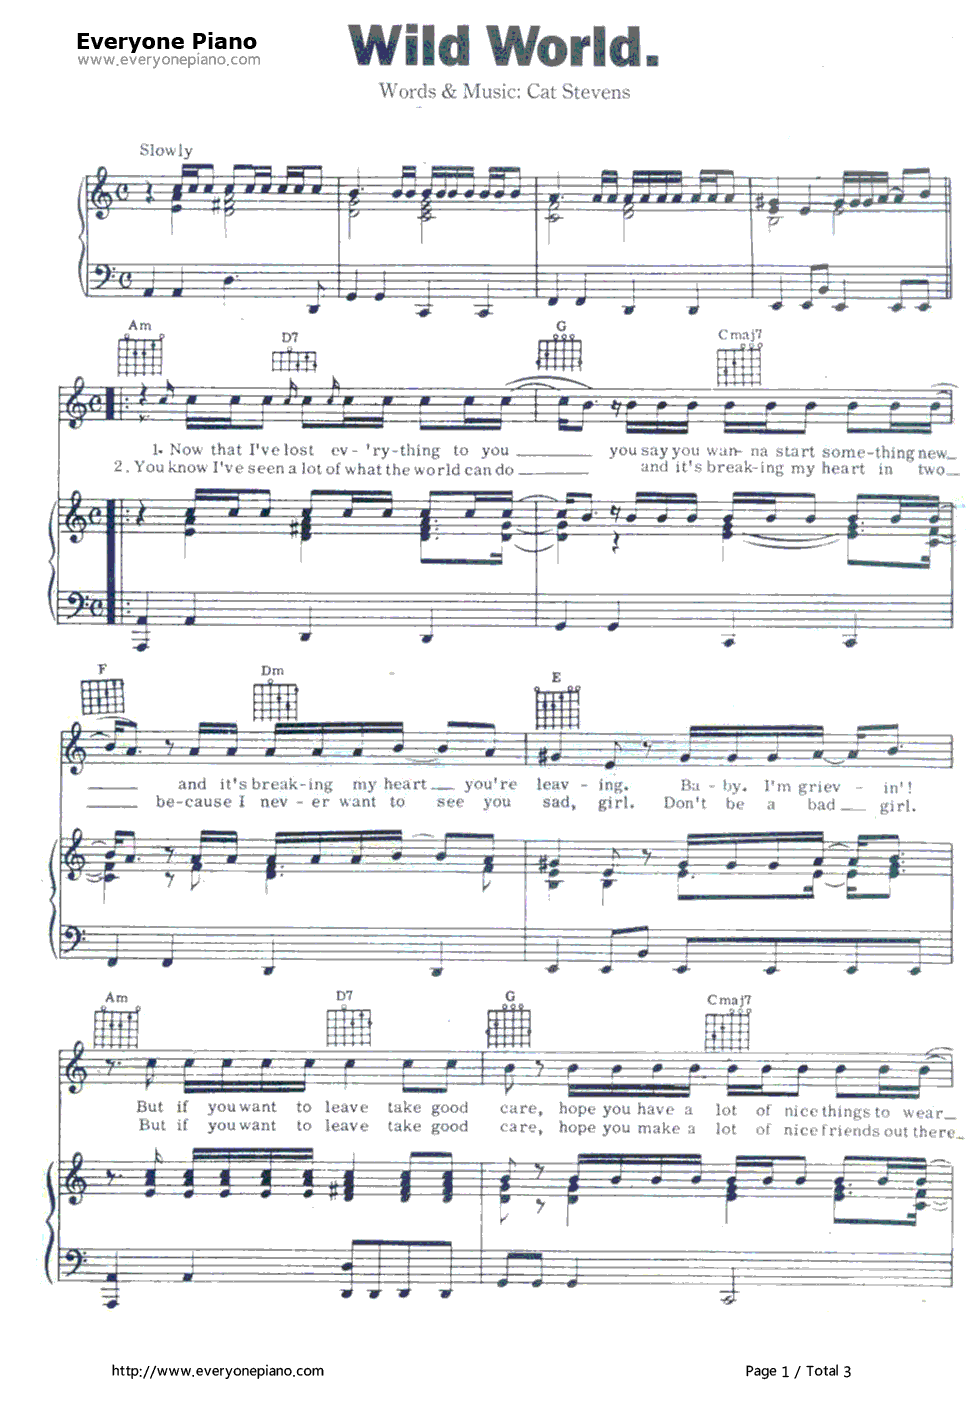 Wild WorldCat Stevens Stave Preview 1Free Piano Sheet